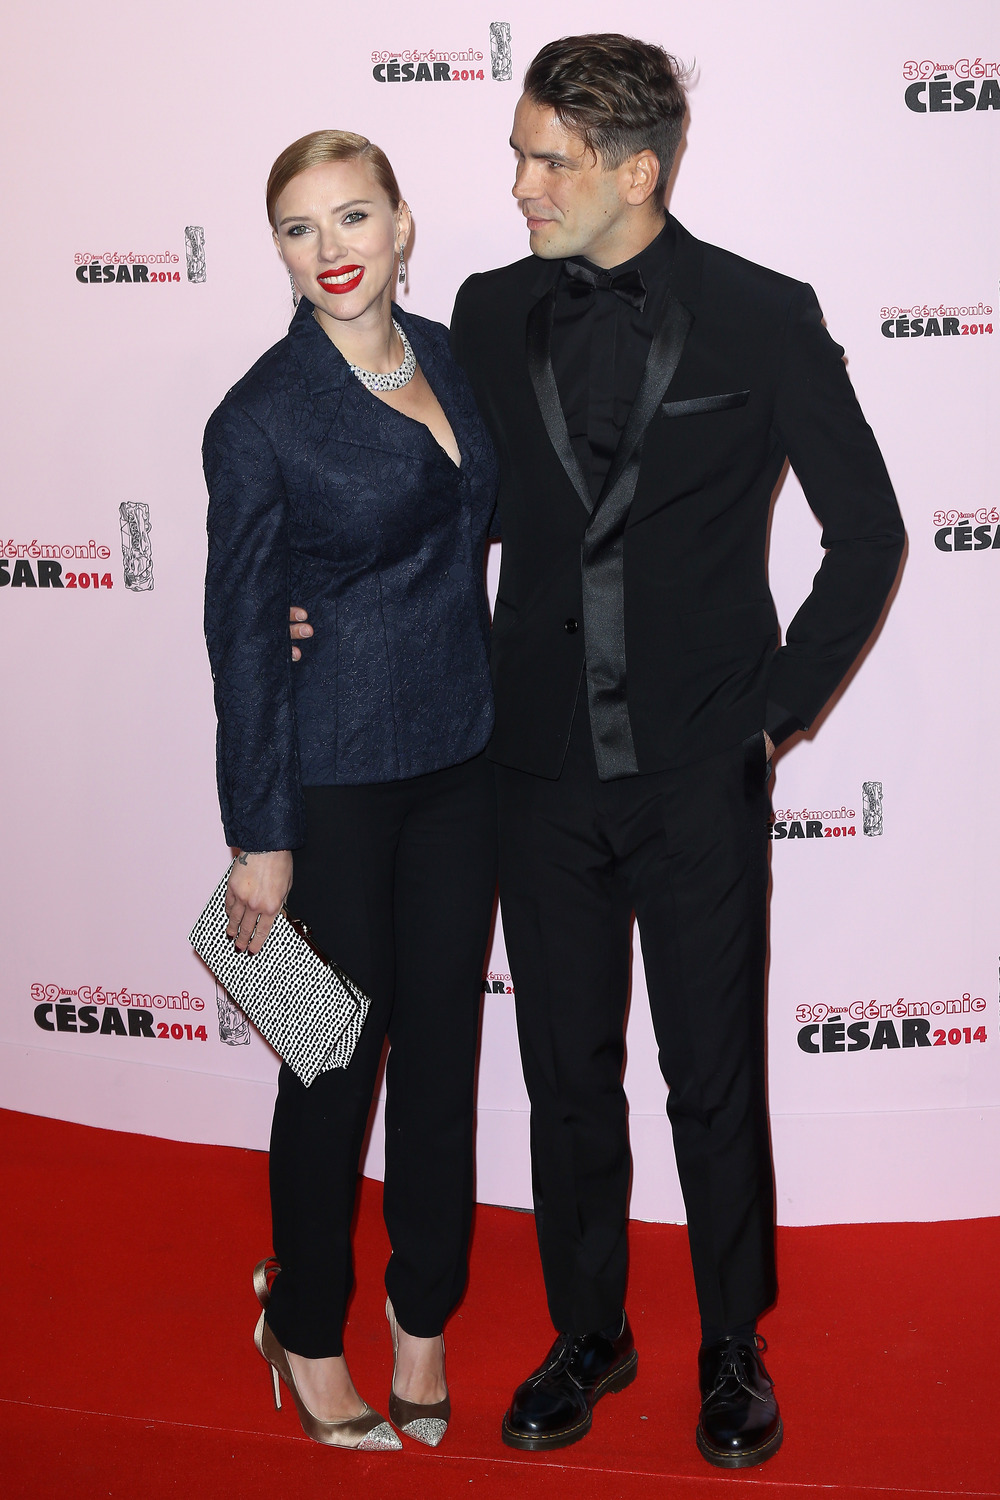 Scarlett Johansson Pregnant With Her First Child: Report — Who's the Father? (VIDEO)